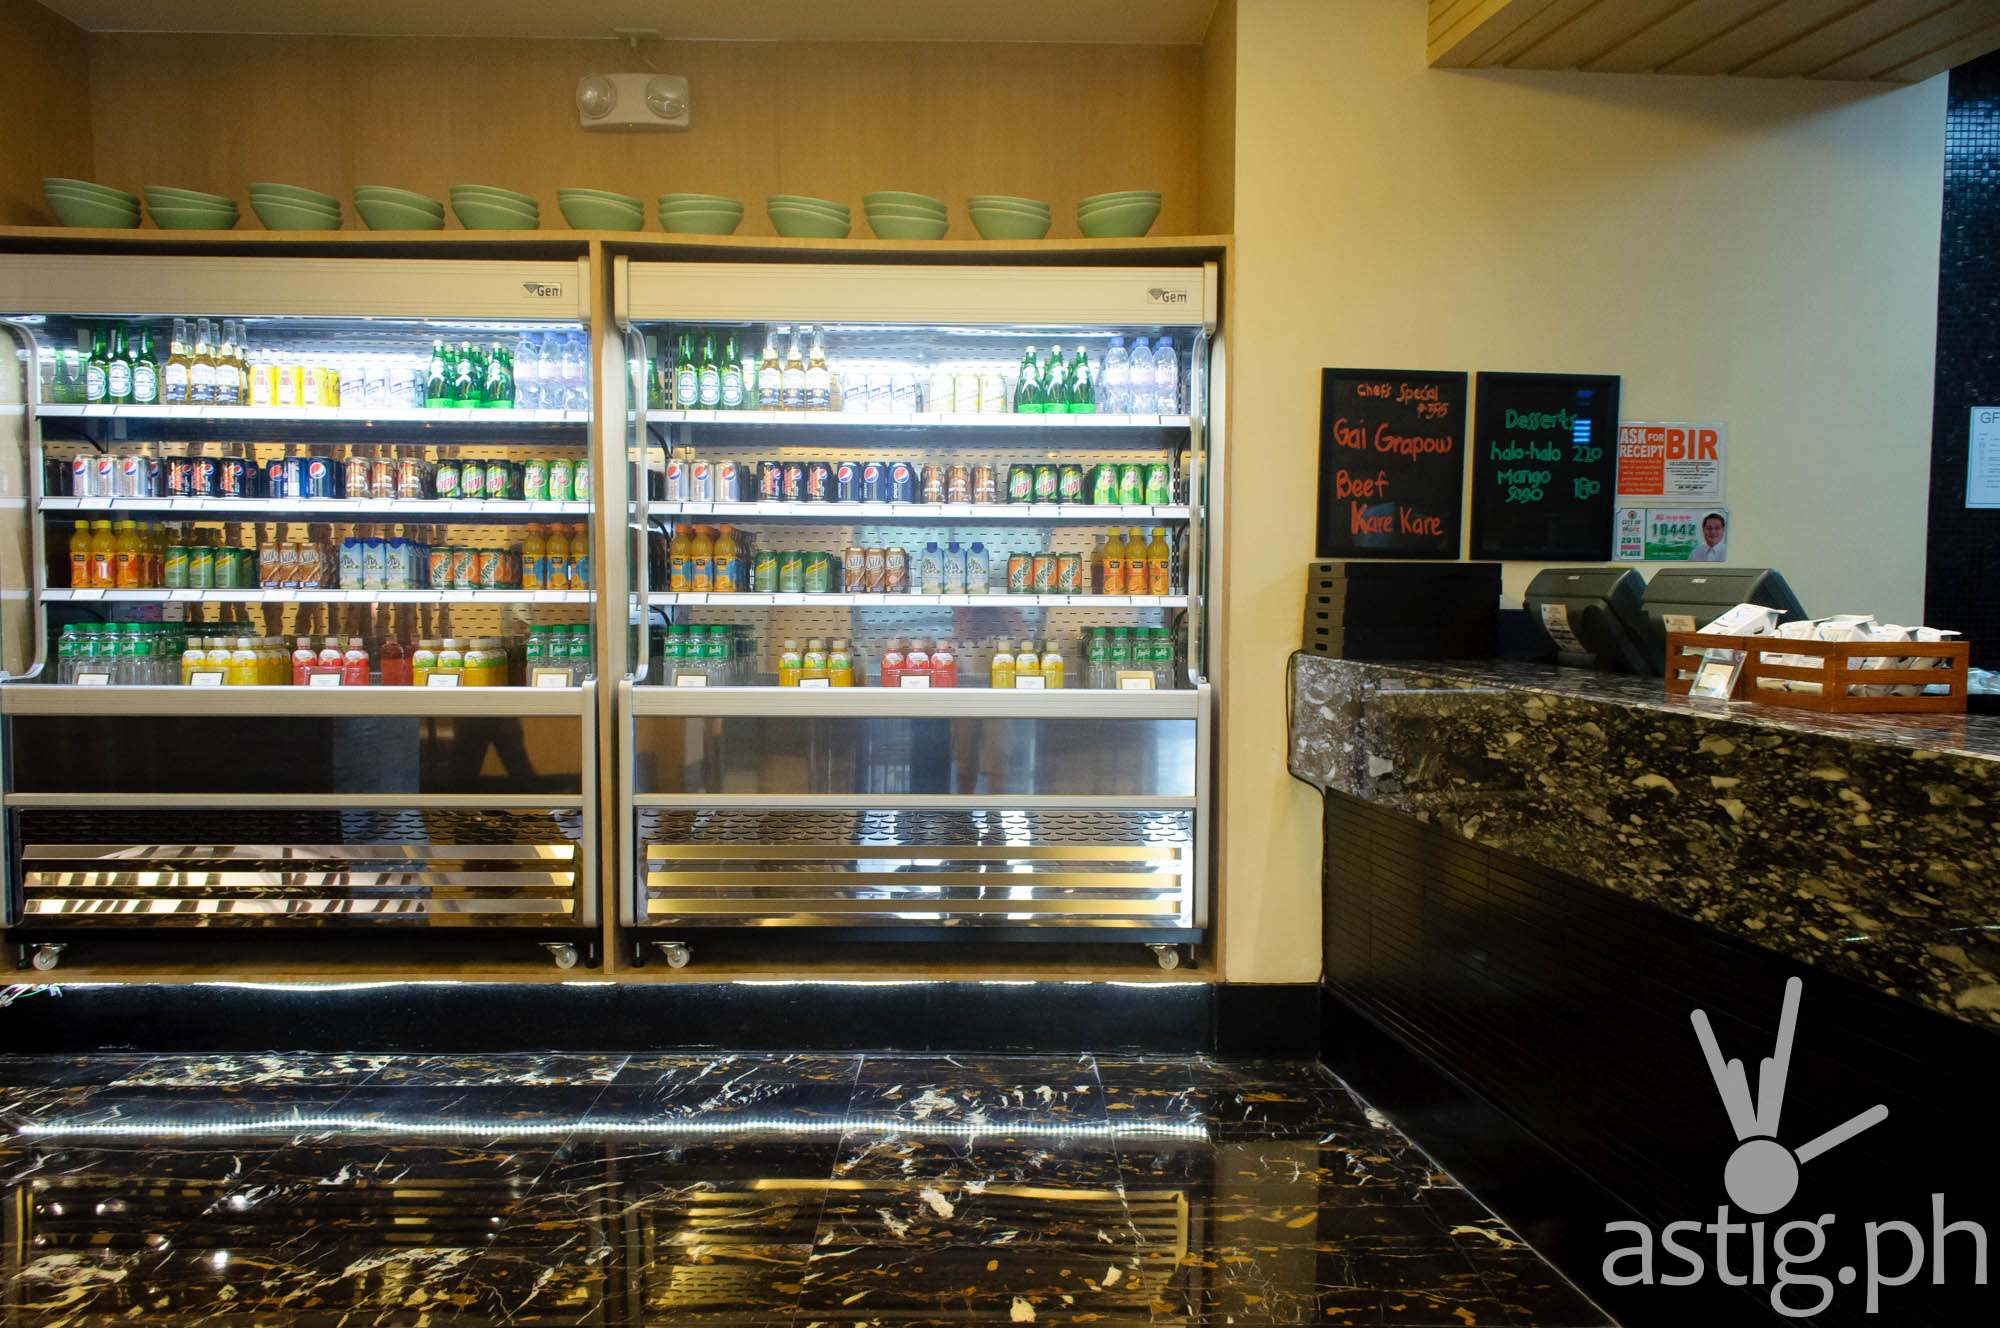 Chilled drinks freezer - Mian at Marriott Grand Ballroom